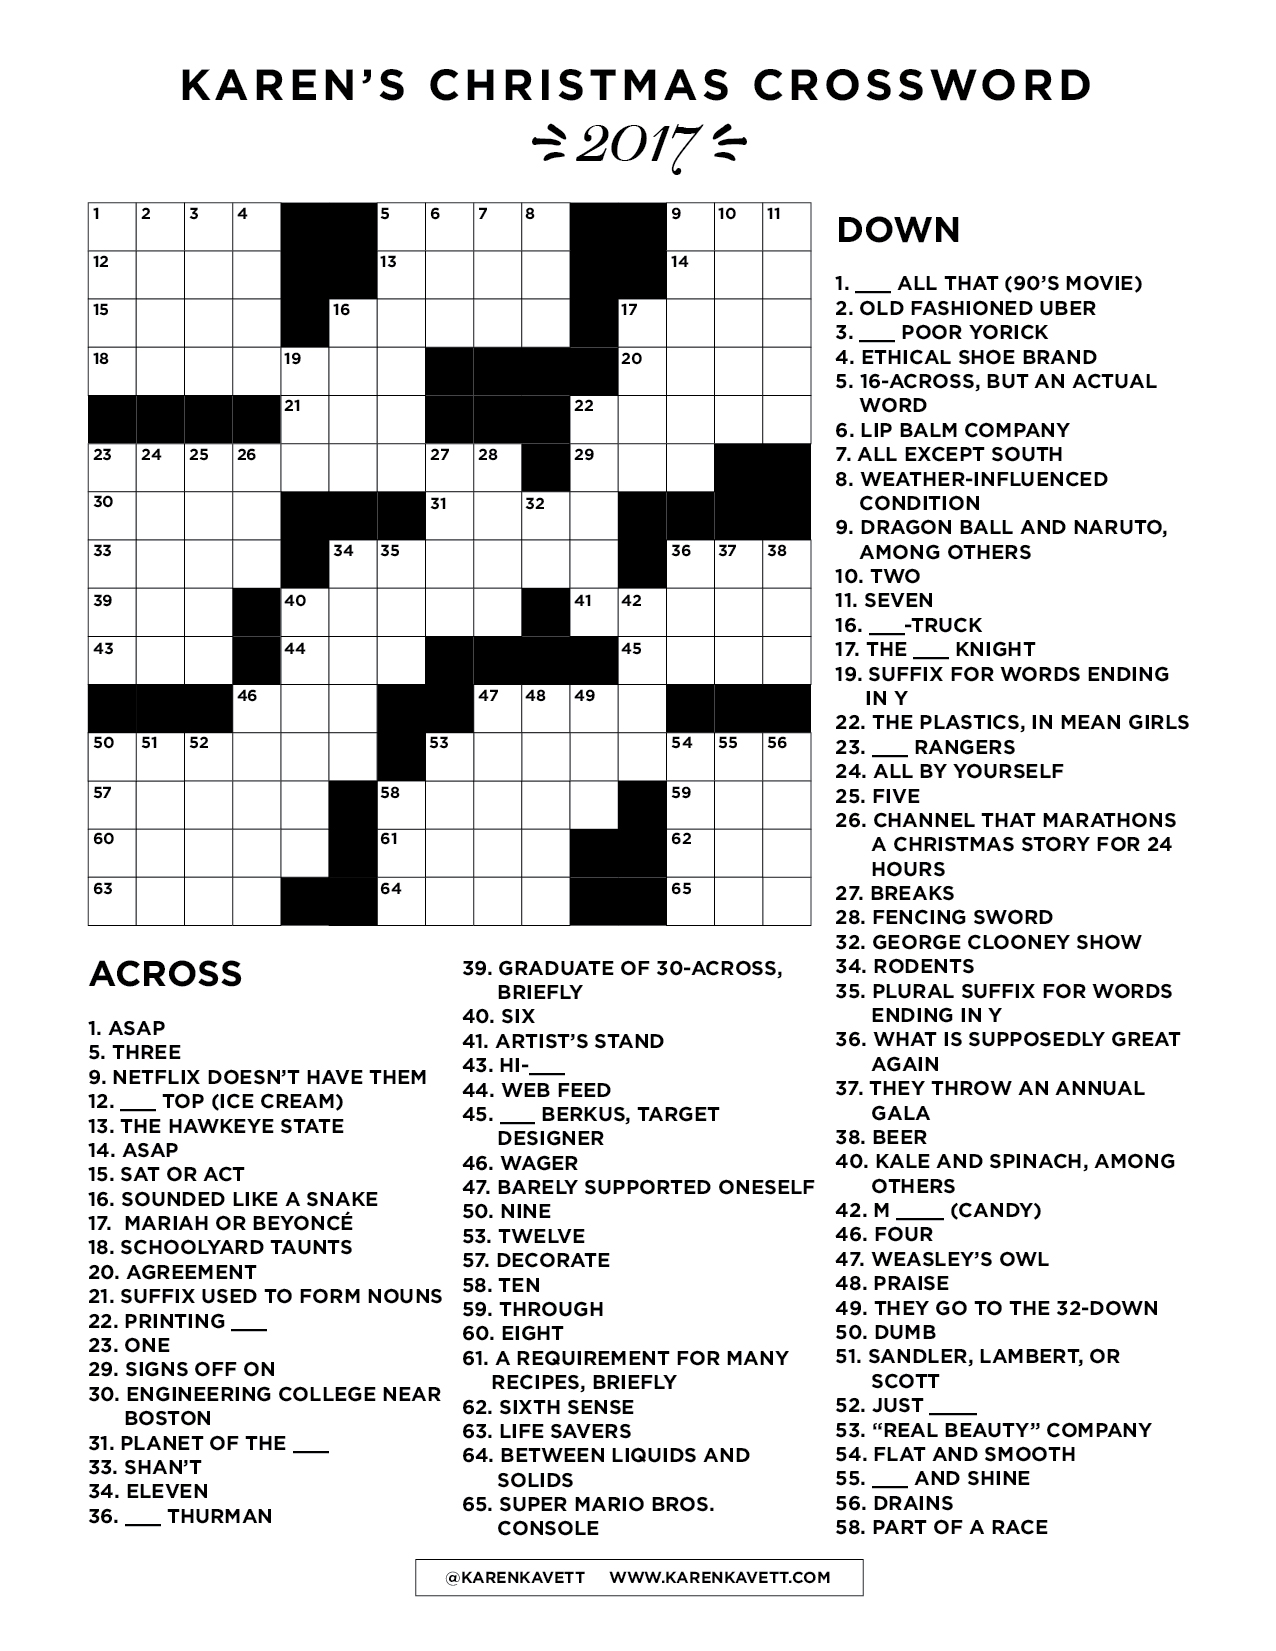 Merry Christmas Everybody As A Gift For My Family I Made Custom Crossword Puzzle With Fun Twist Keep Reading To Download And Print The